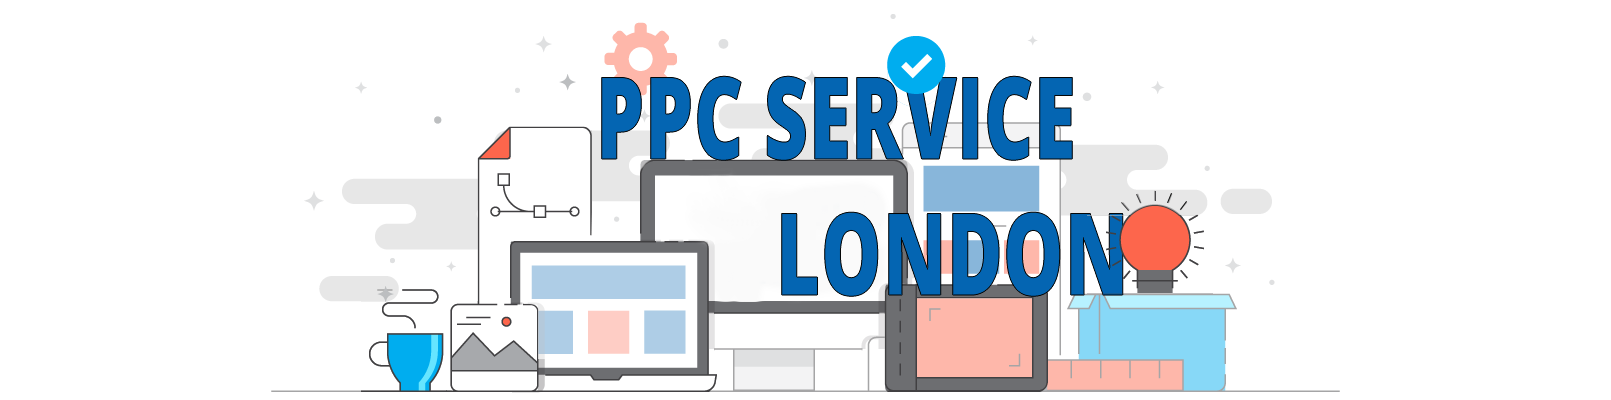 PPC Service London: Top Ranked Pay per click agency